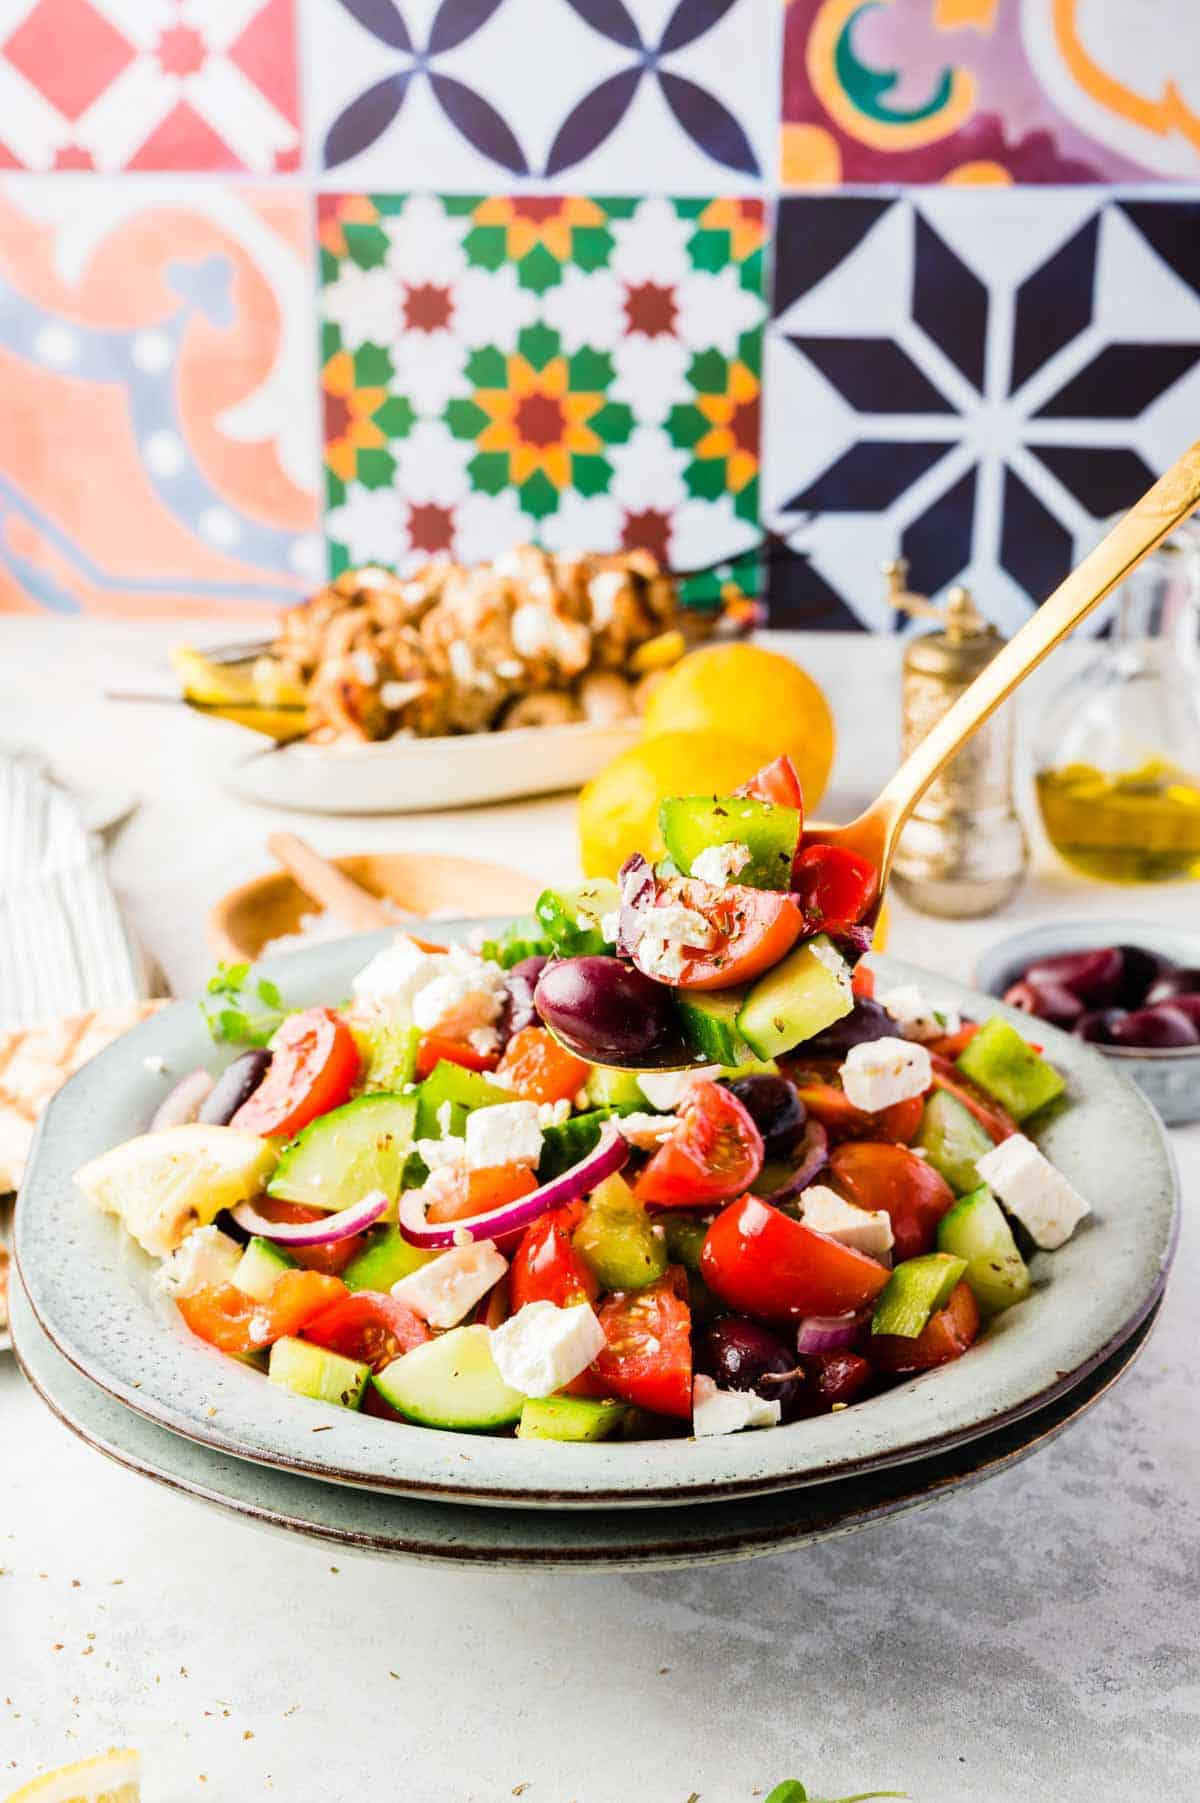 A Golden Spoon Lifting a Bite of Greek Salad From a Large Bowl